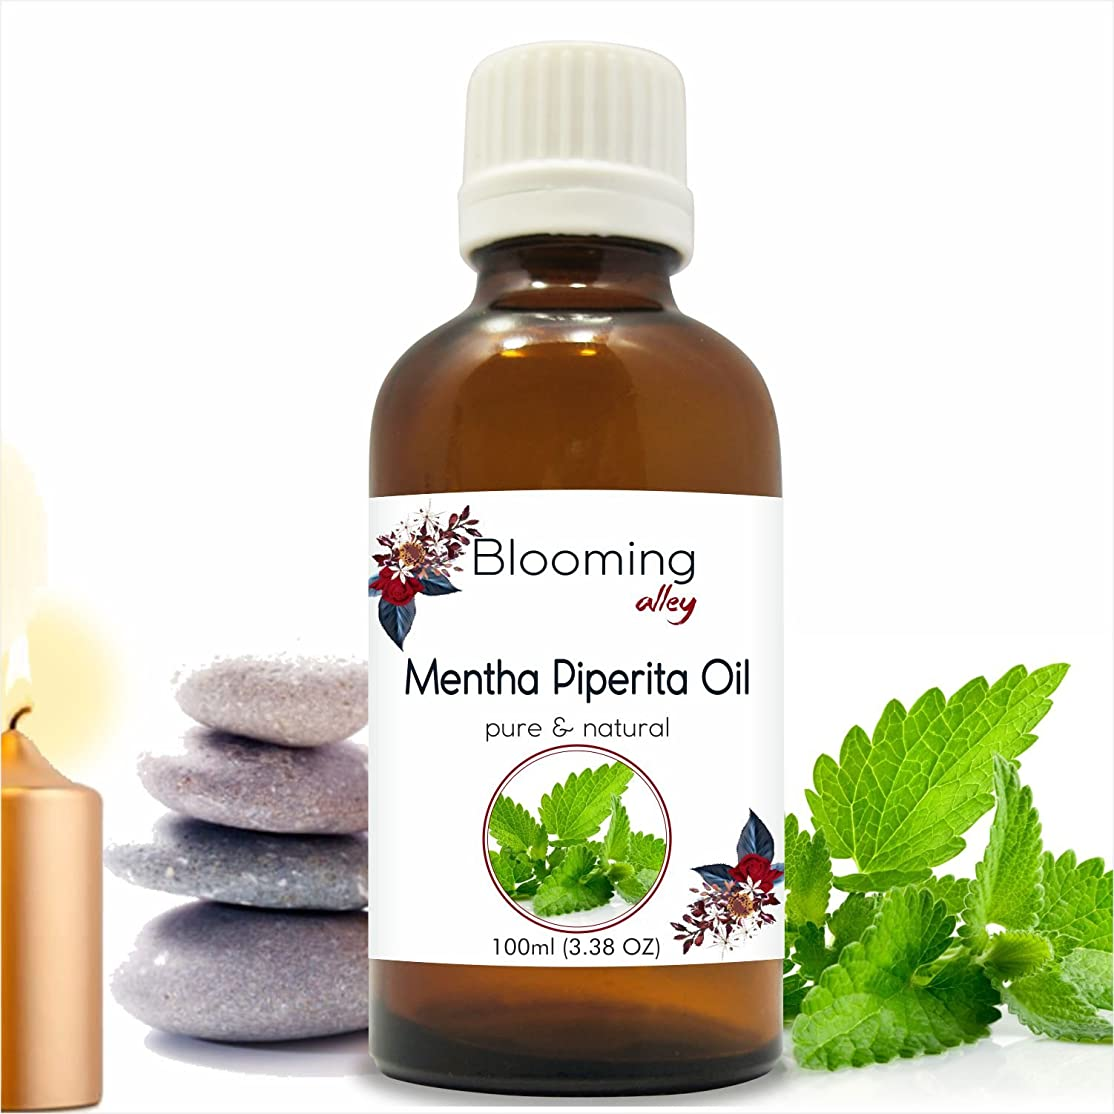 公然と不承認ペンフレンドMenthapipreta Oil(Mentha Piperita) Essential Oil 100 ml or 3.38 Fl Oz by Blooming Alley